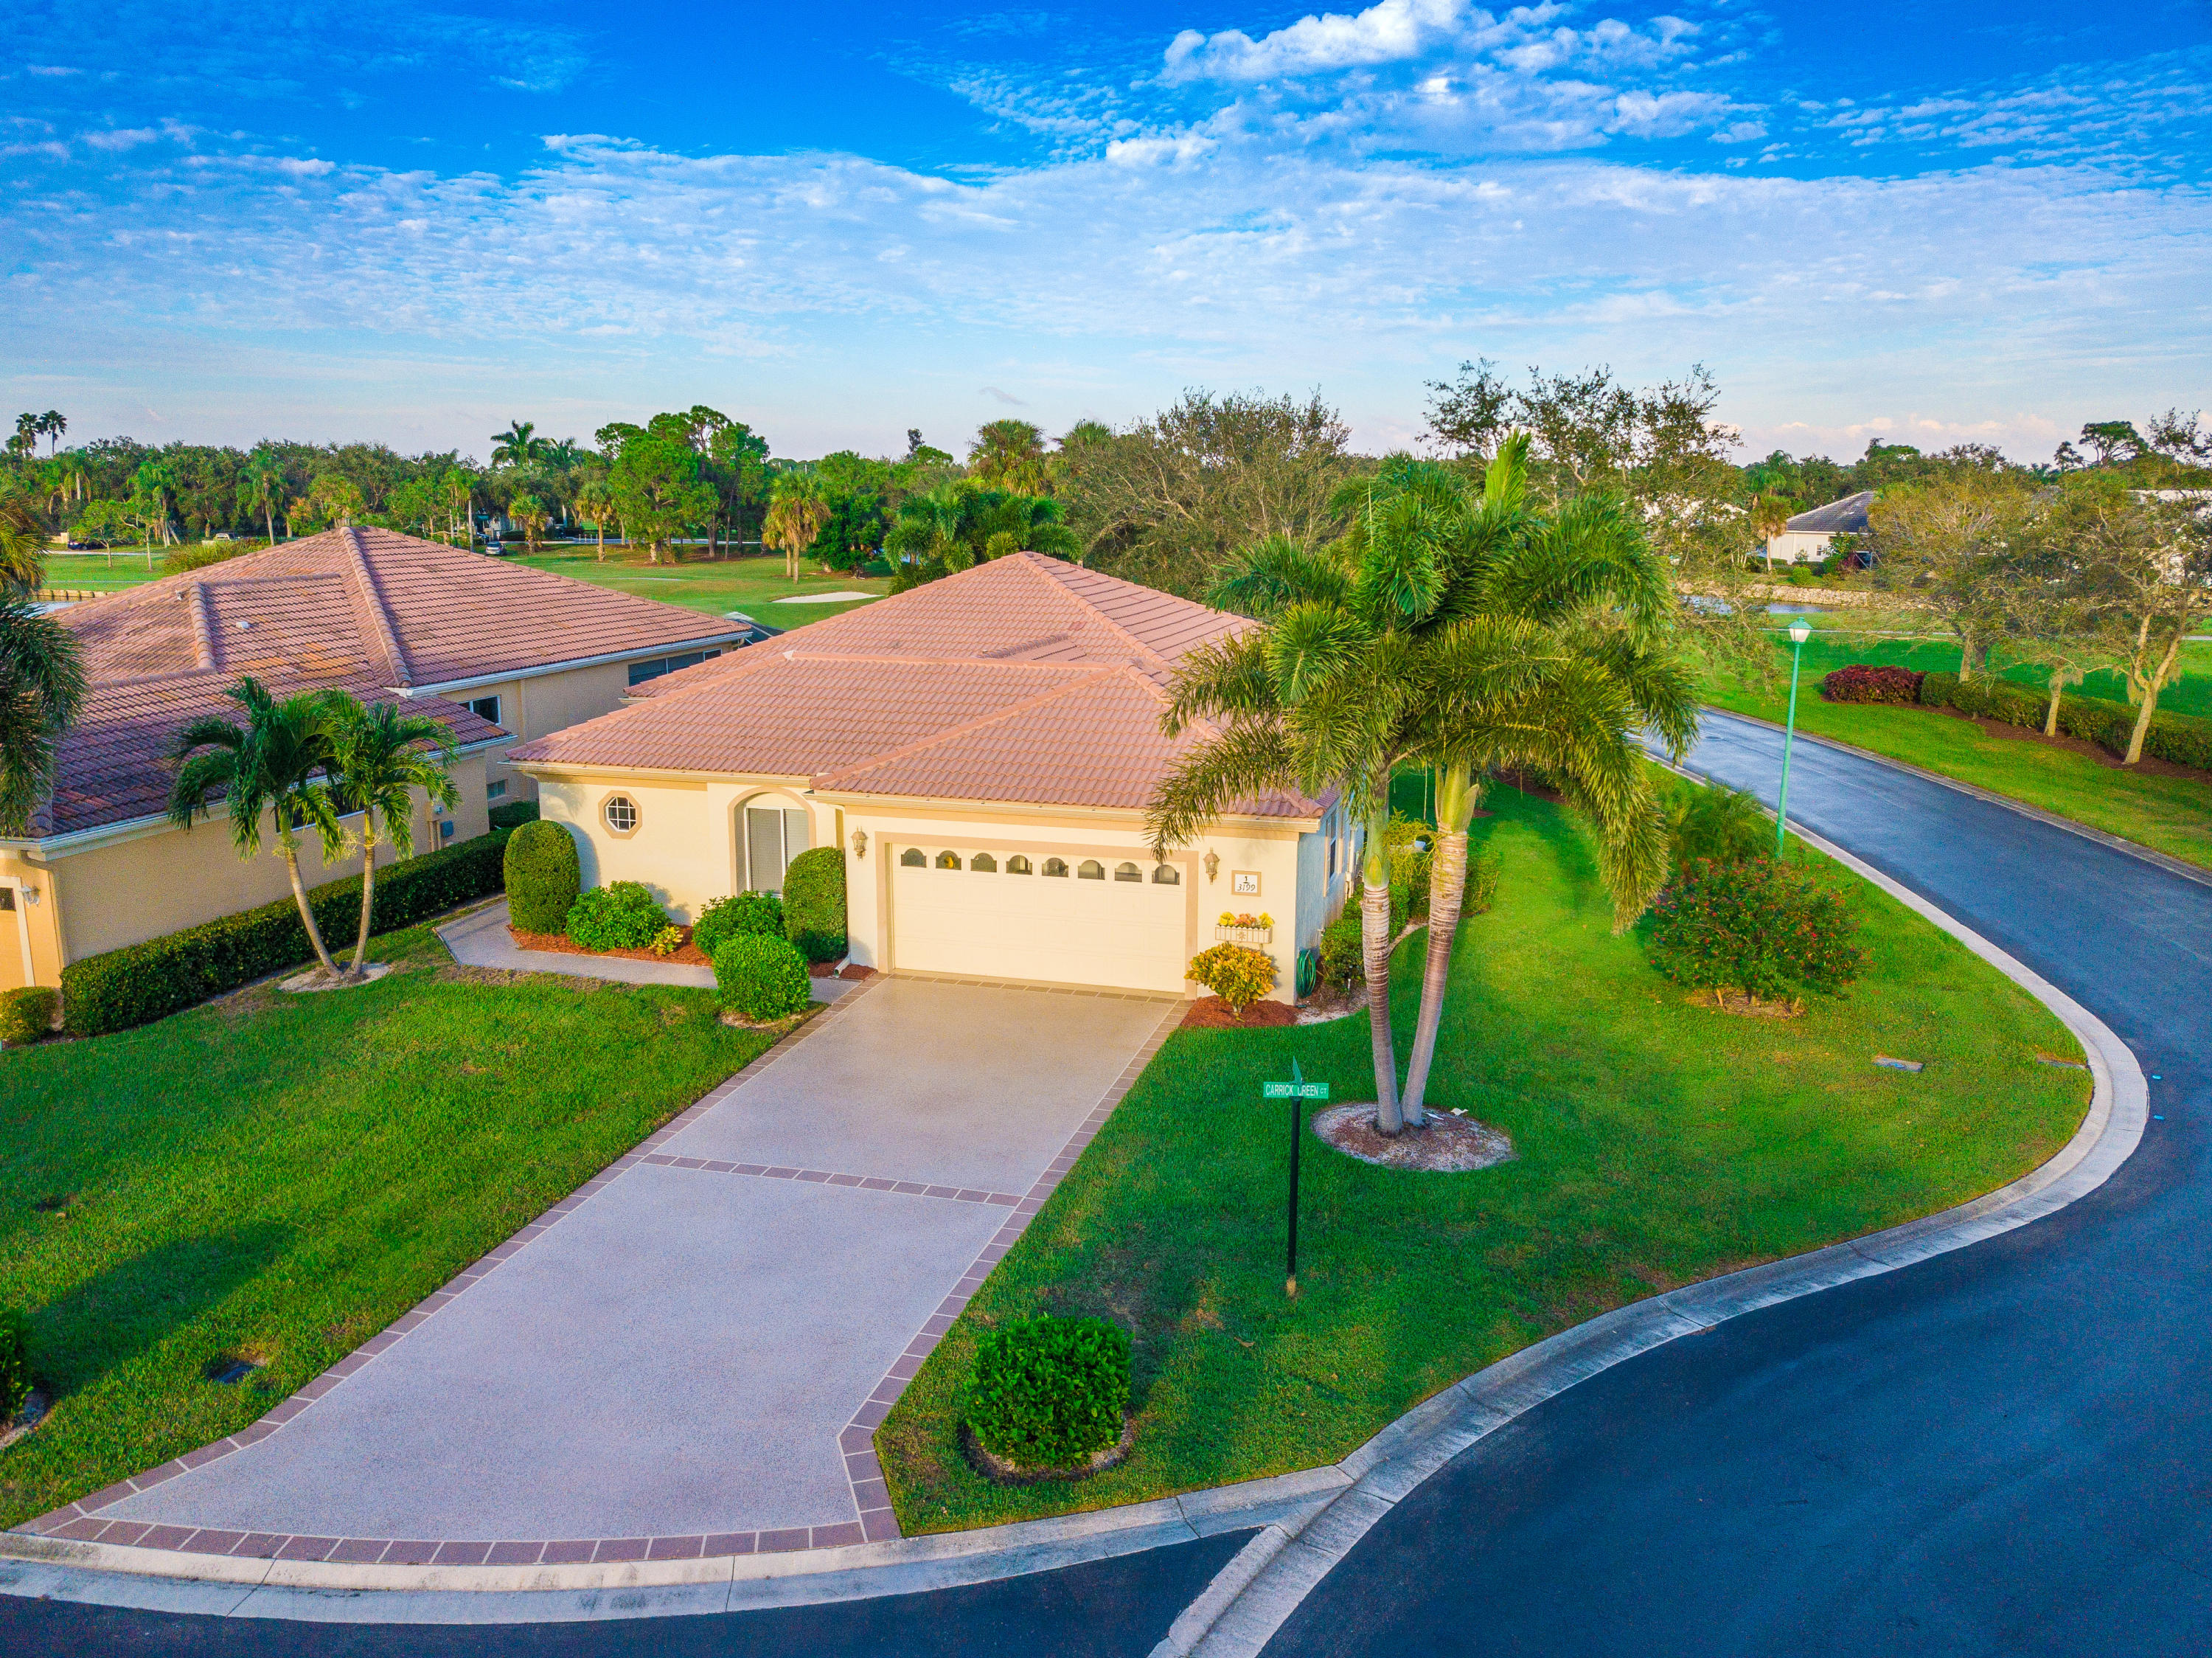 3199 Carrick Green Court, Port Saint Lucie, Florida 34952, 3 Bedrooms Bedrooms, ,2.1 BathroomsBathrooms,Single Family,For Sale,Carrick Green,RX-10483643